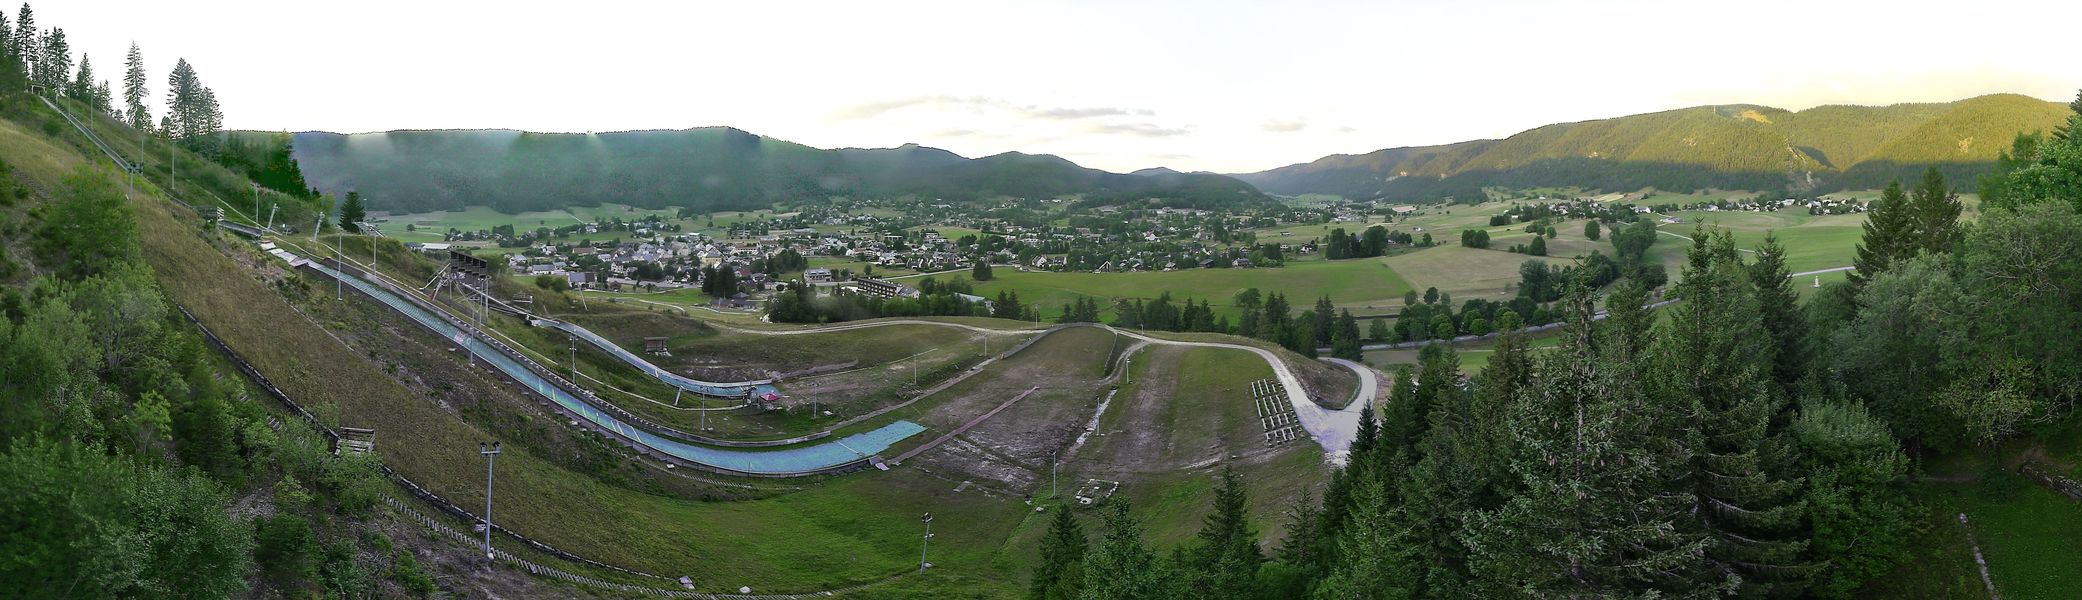 Webcam Autrans - station et tremplin olympique